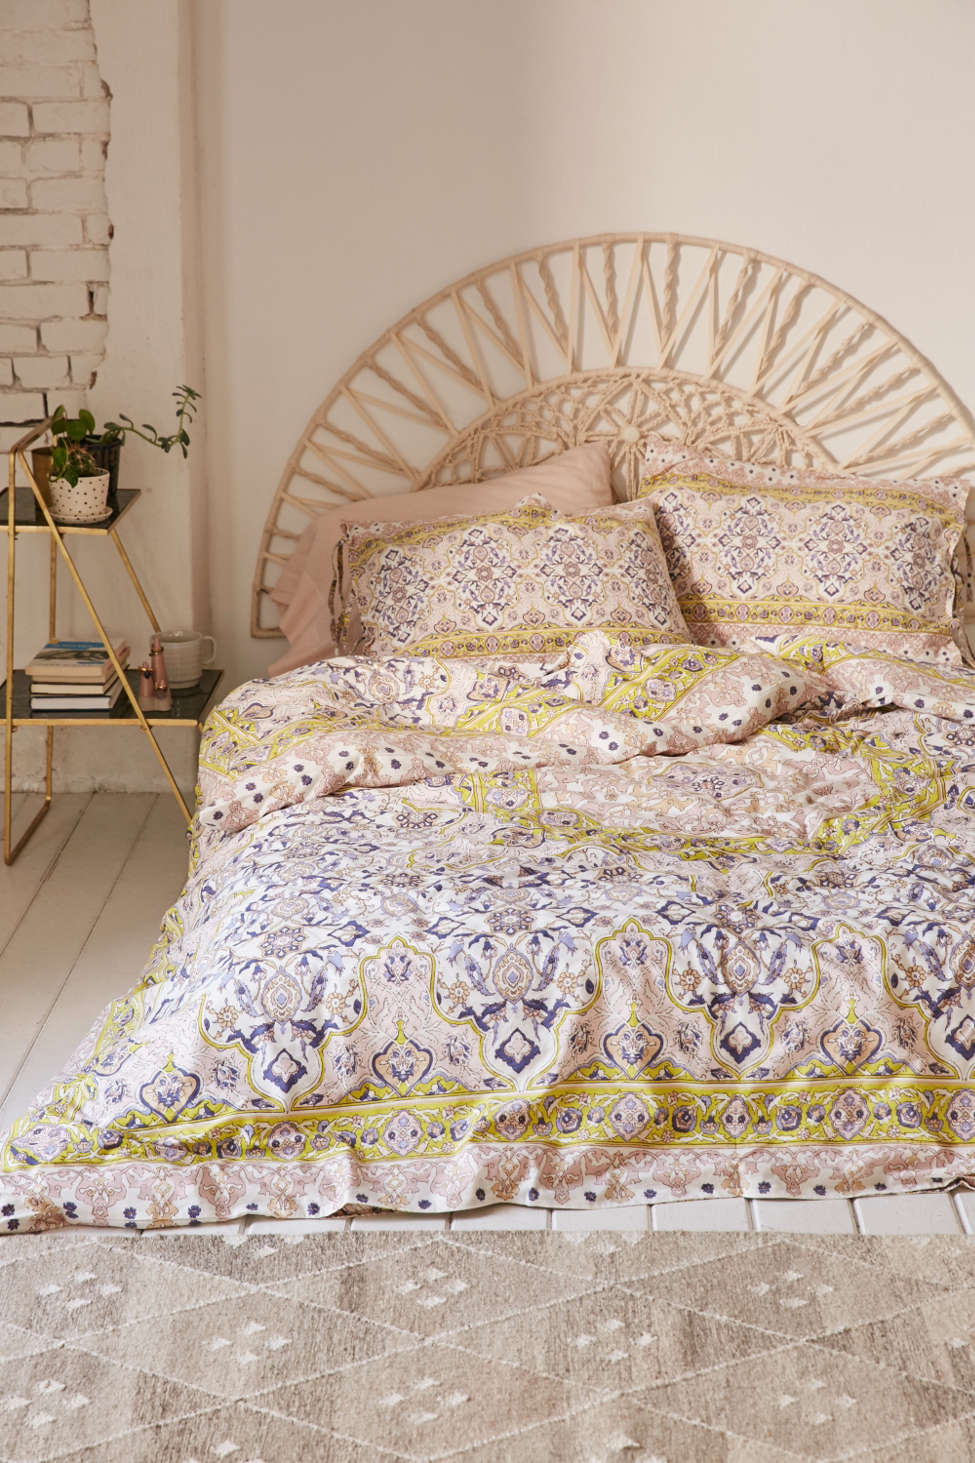 Slide View: 1: Plum & Bow Anza Tiled Duvet Cover